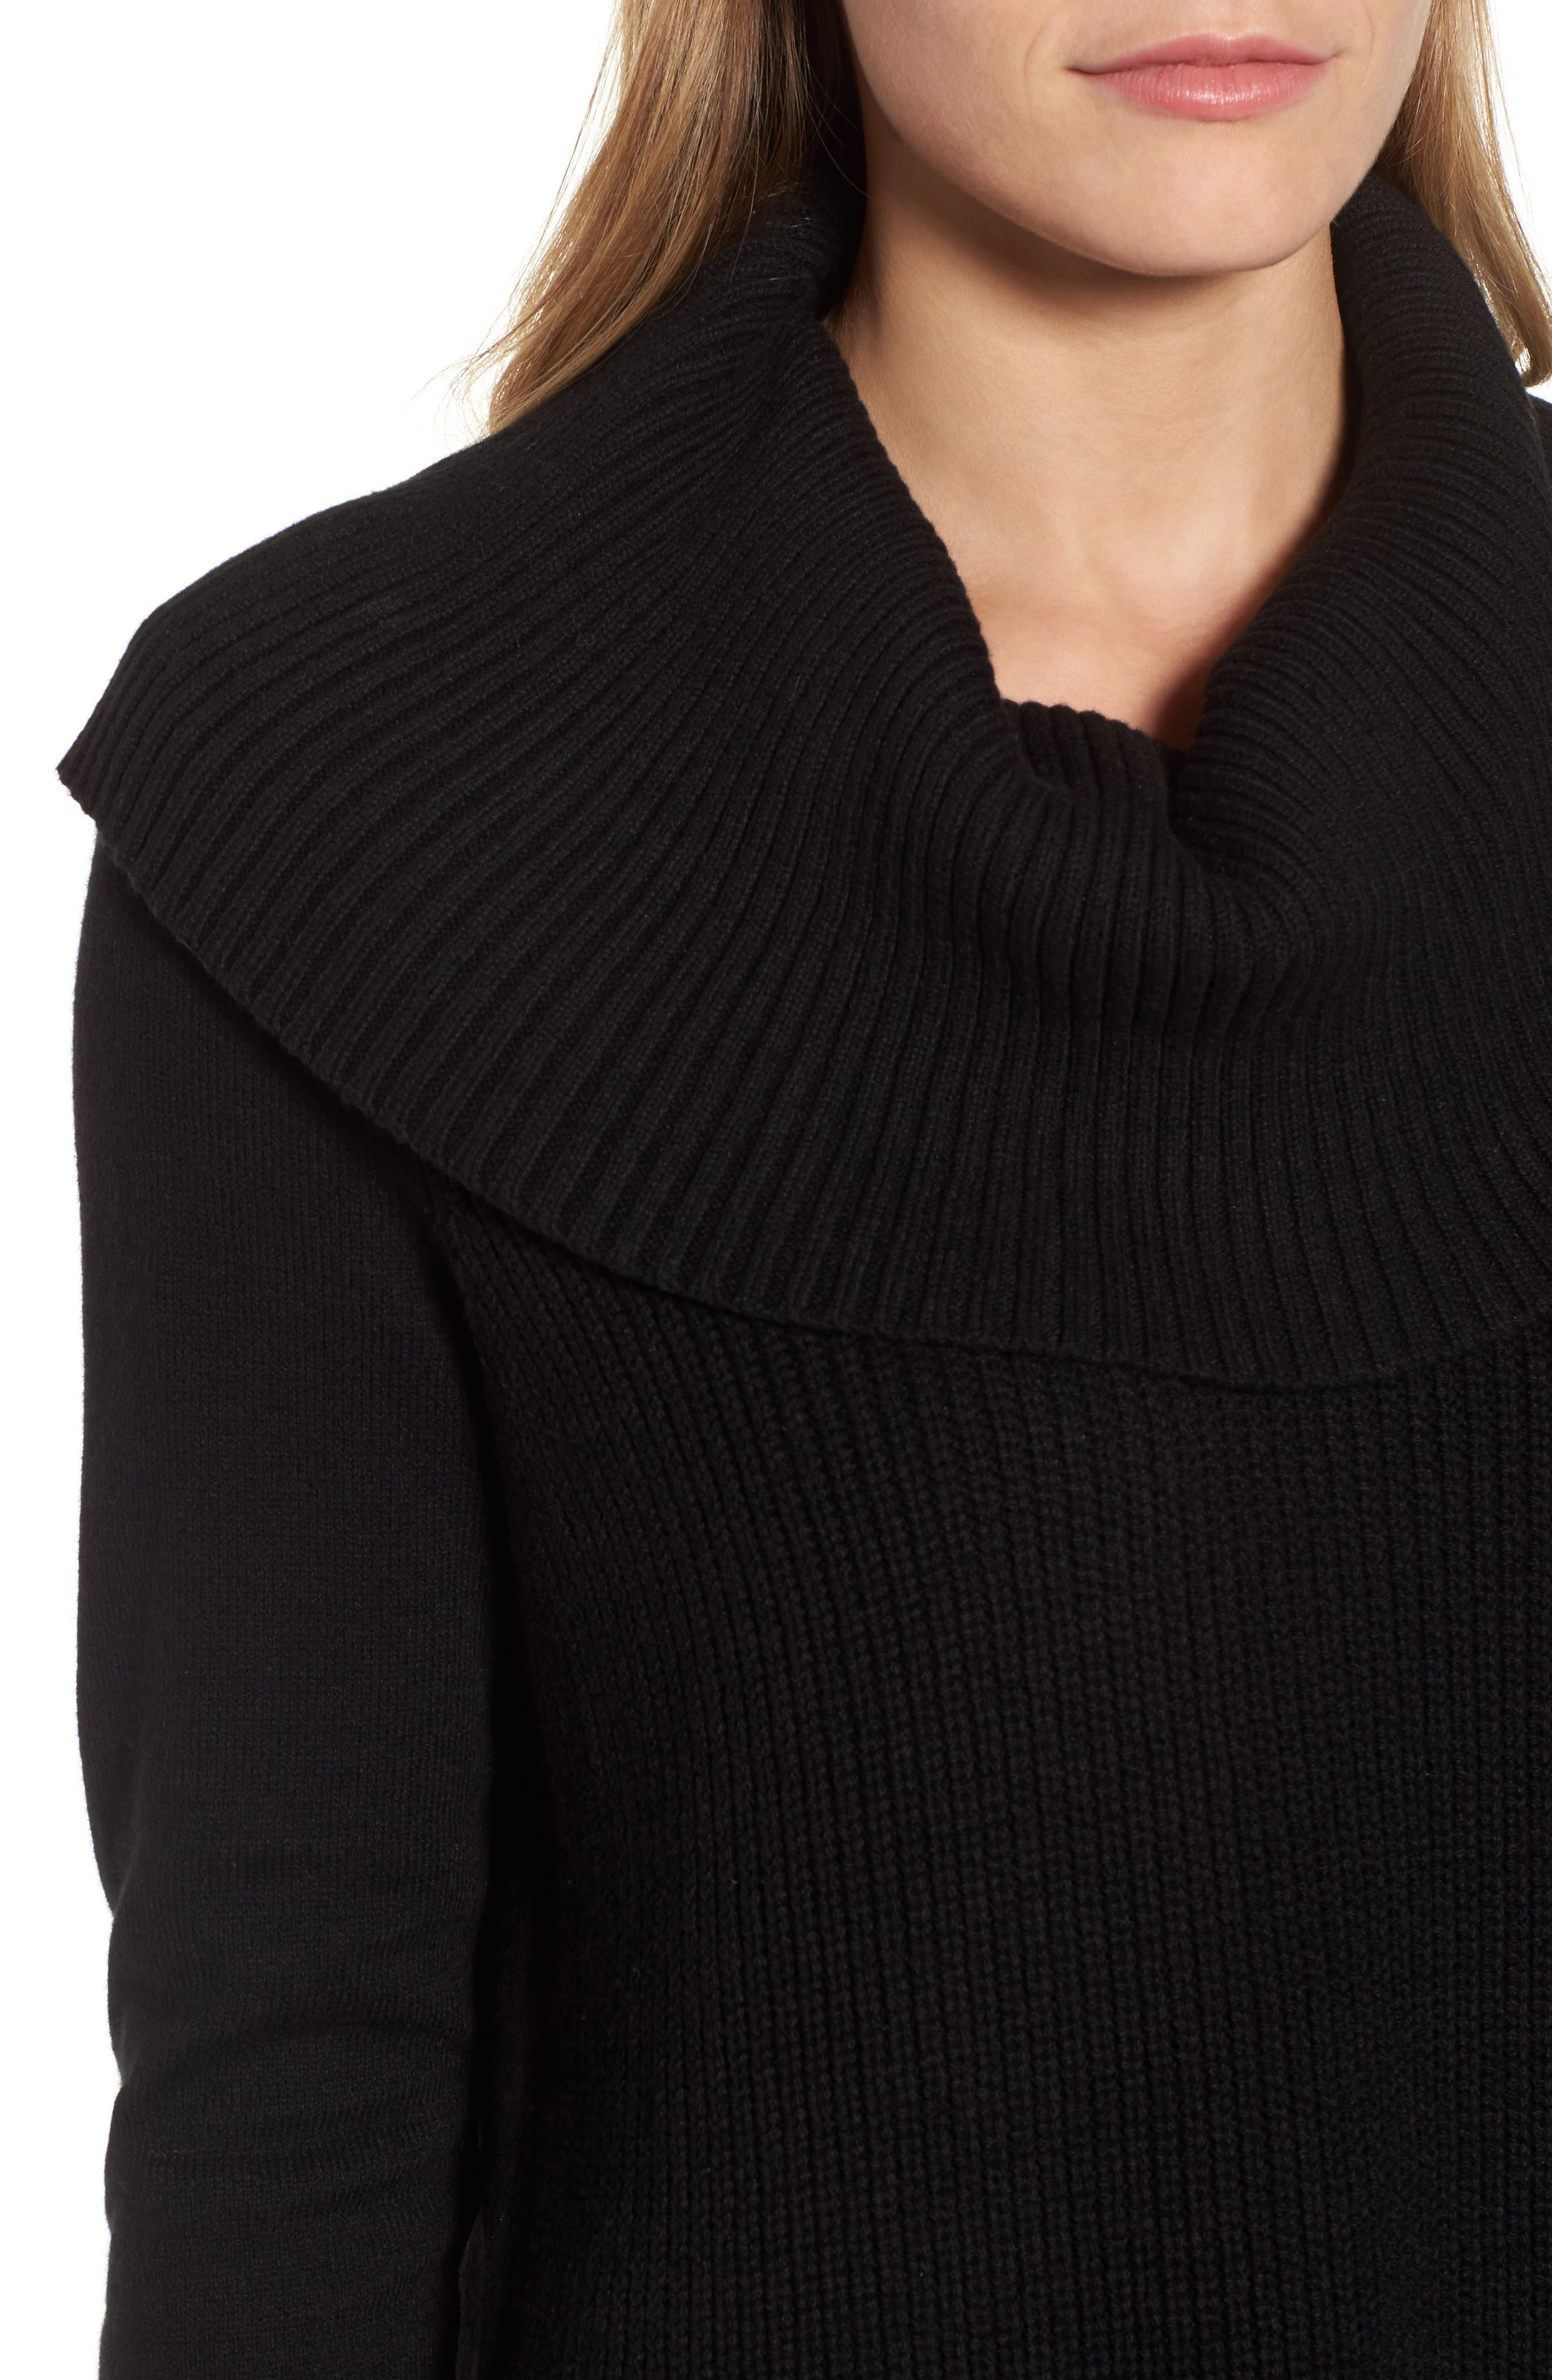 Cowl Neck Sweater,                             Alternate thumbnail 4, color,                             001